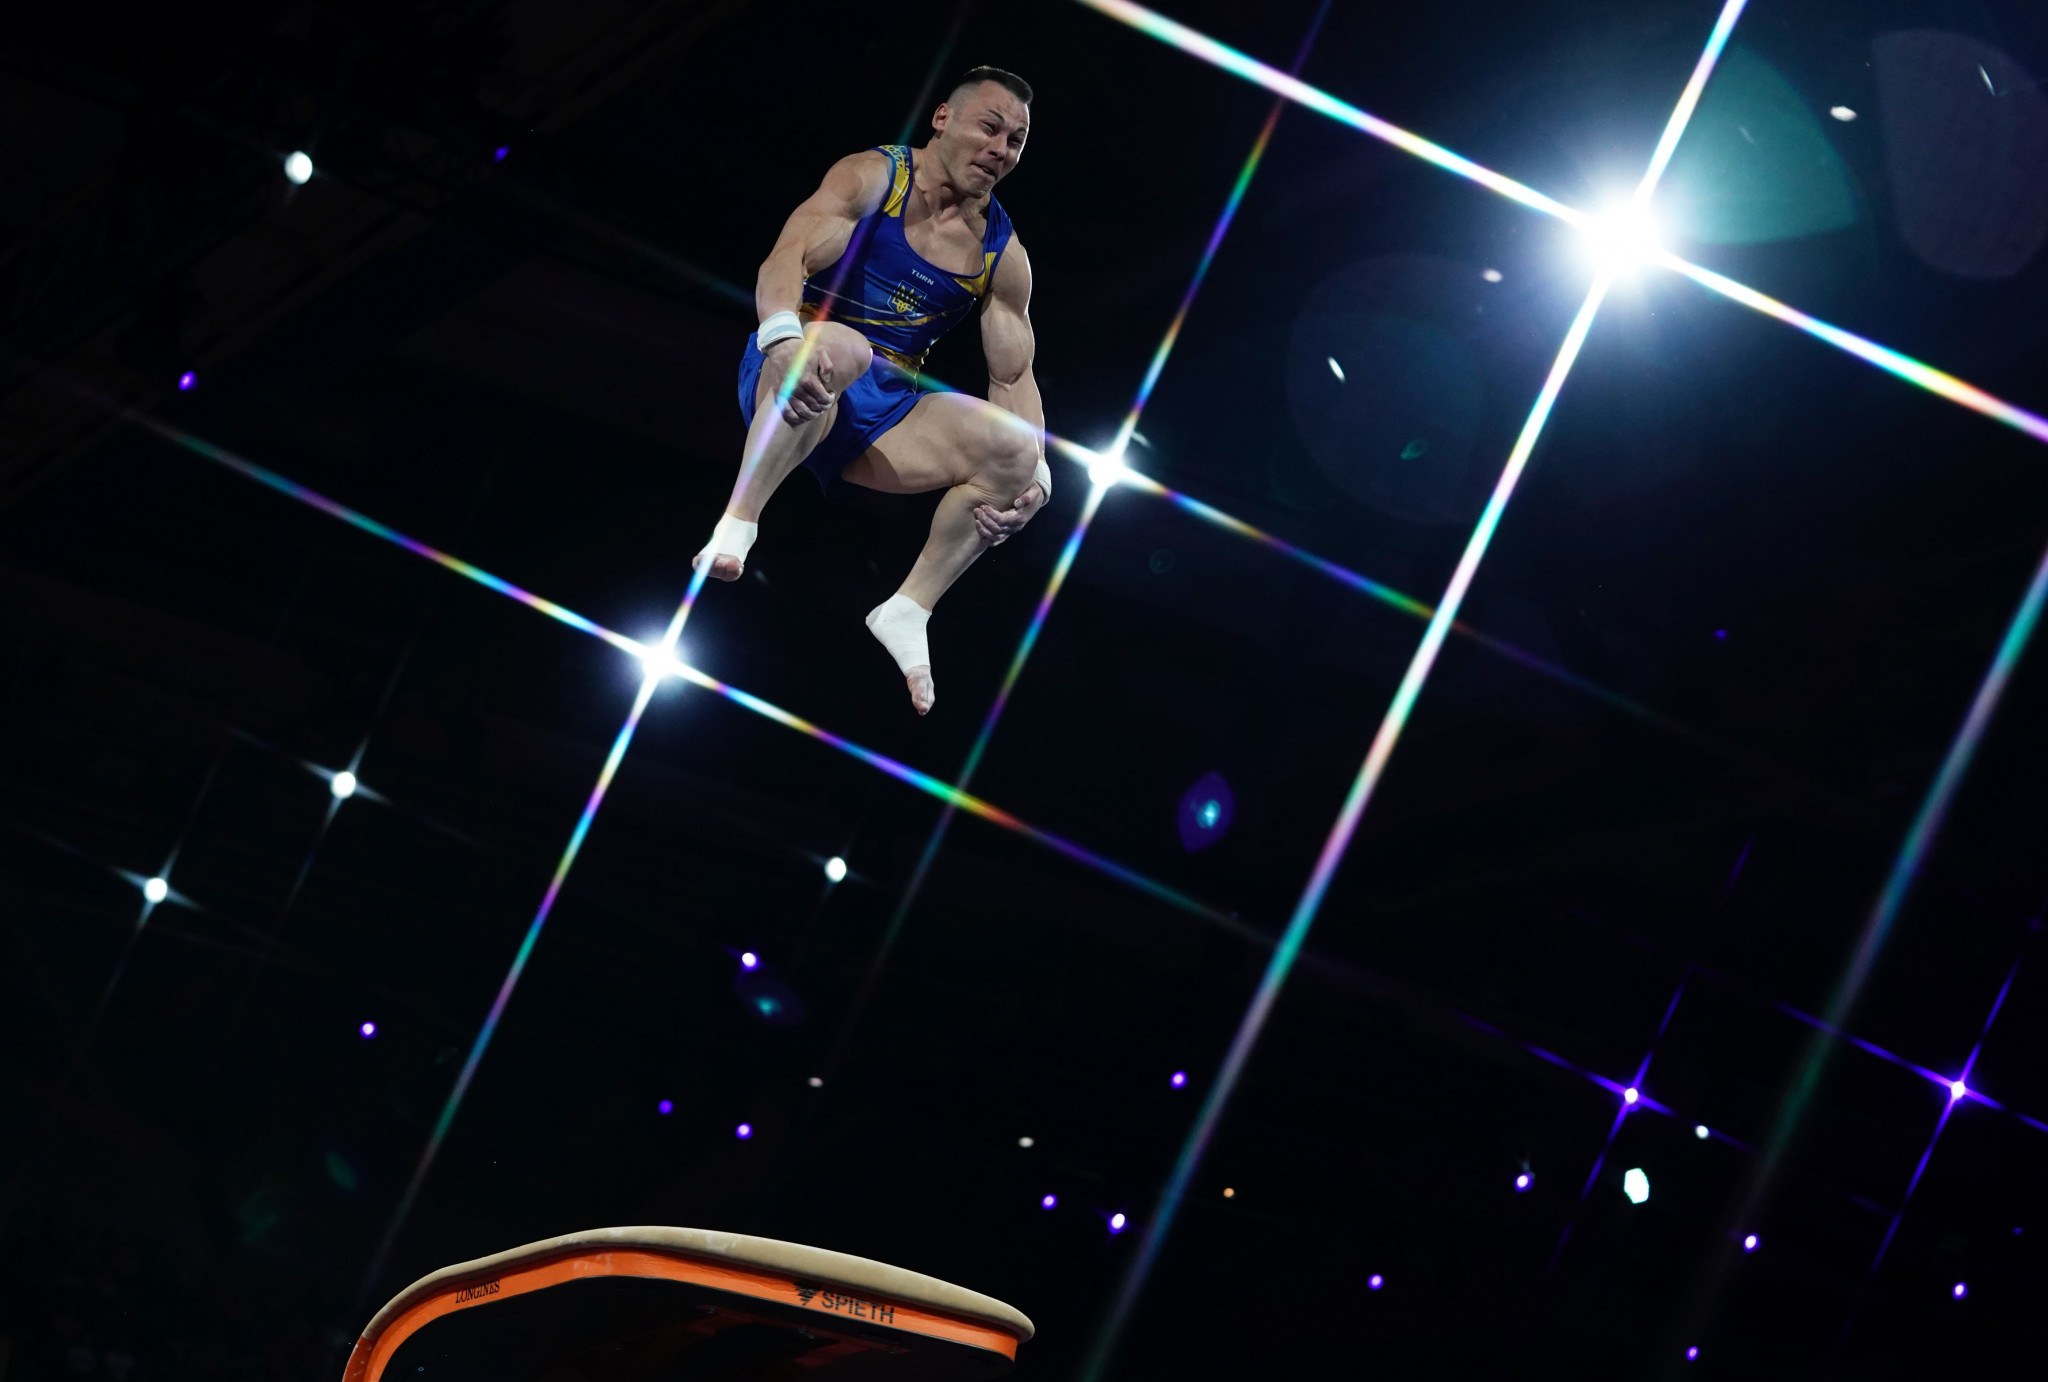 Radivilov leads vault qualifying at FIG Apparatus World Cup